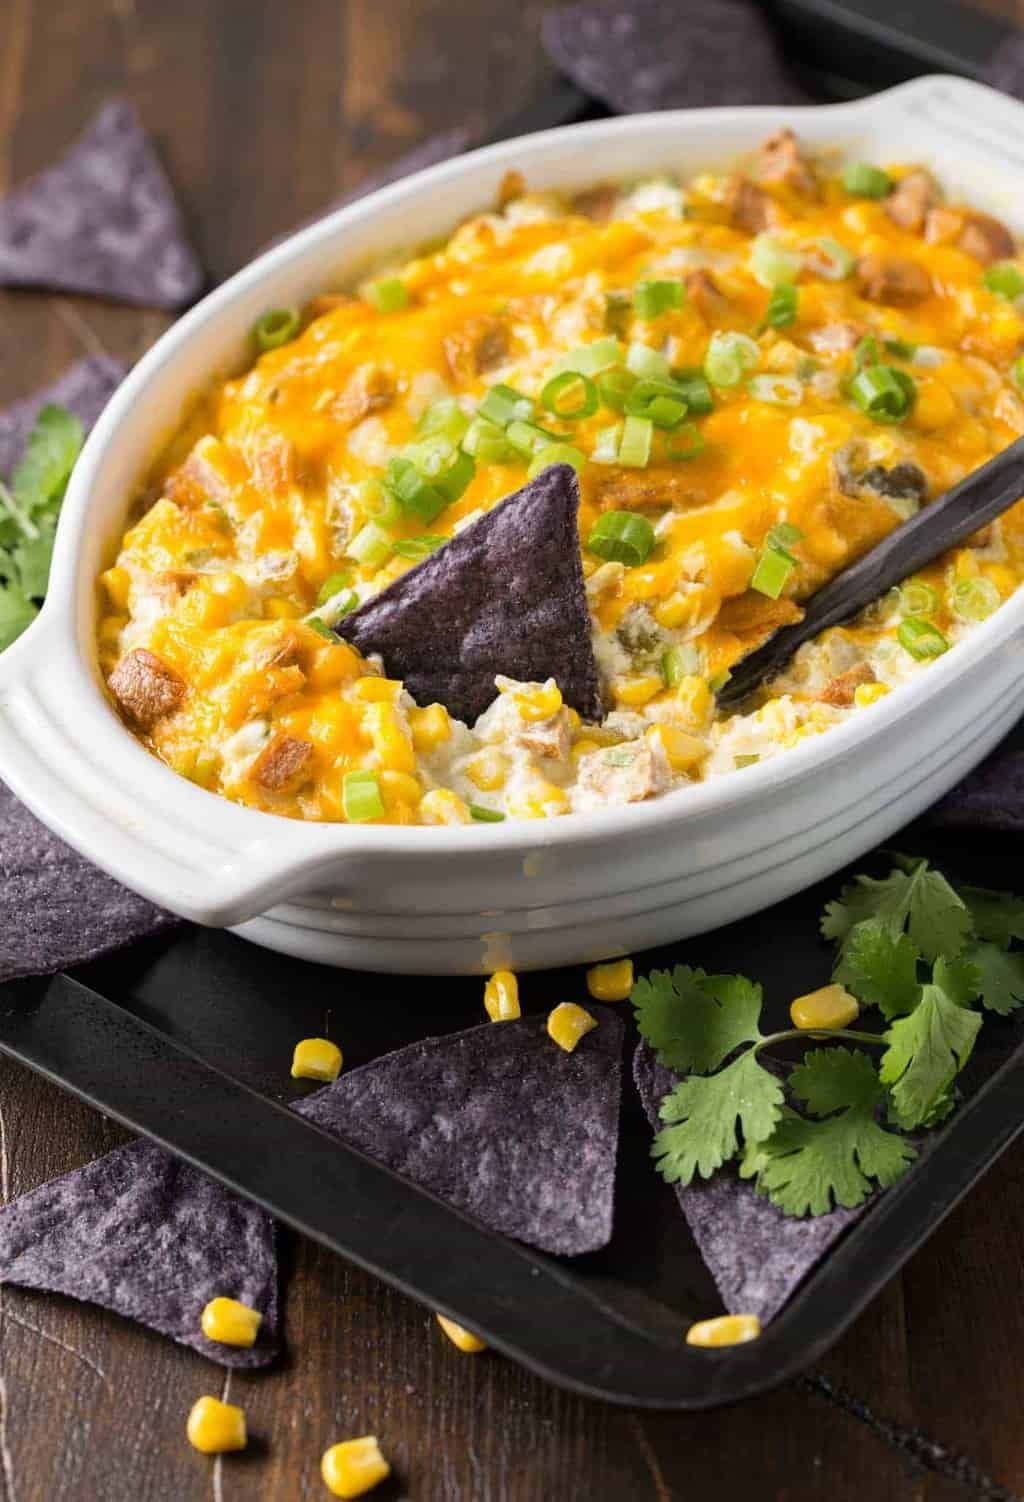 White casserole dish filled with Zippy Sausage and Corn Dip from the oven. The dip is topped with melted cheddar cheese and green onions and surrounded by cilantro and corn tortilla chips.